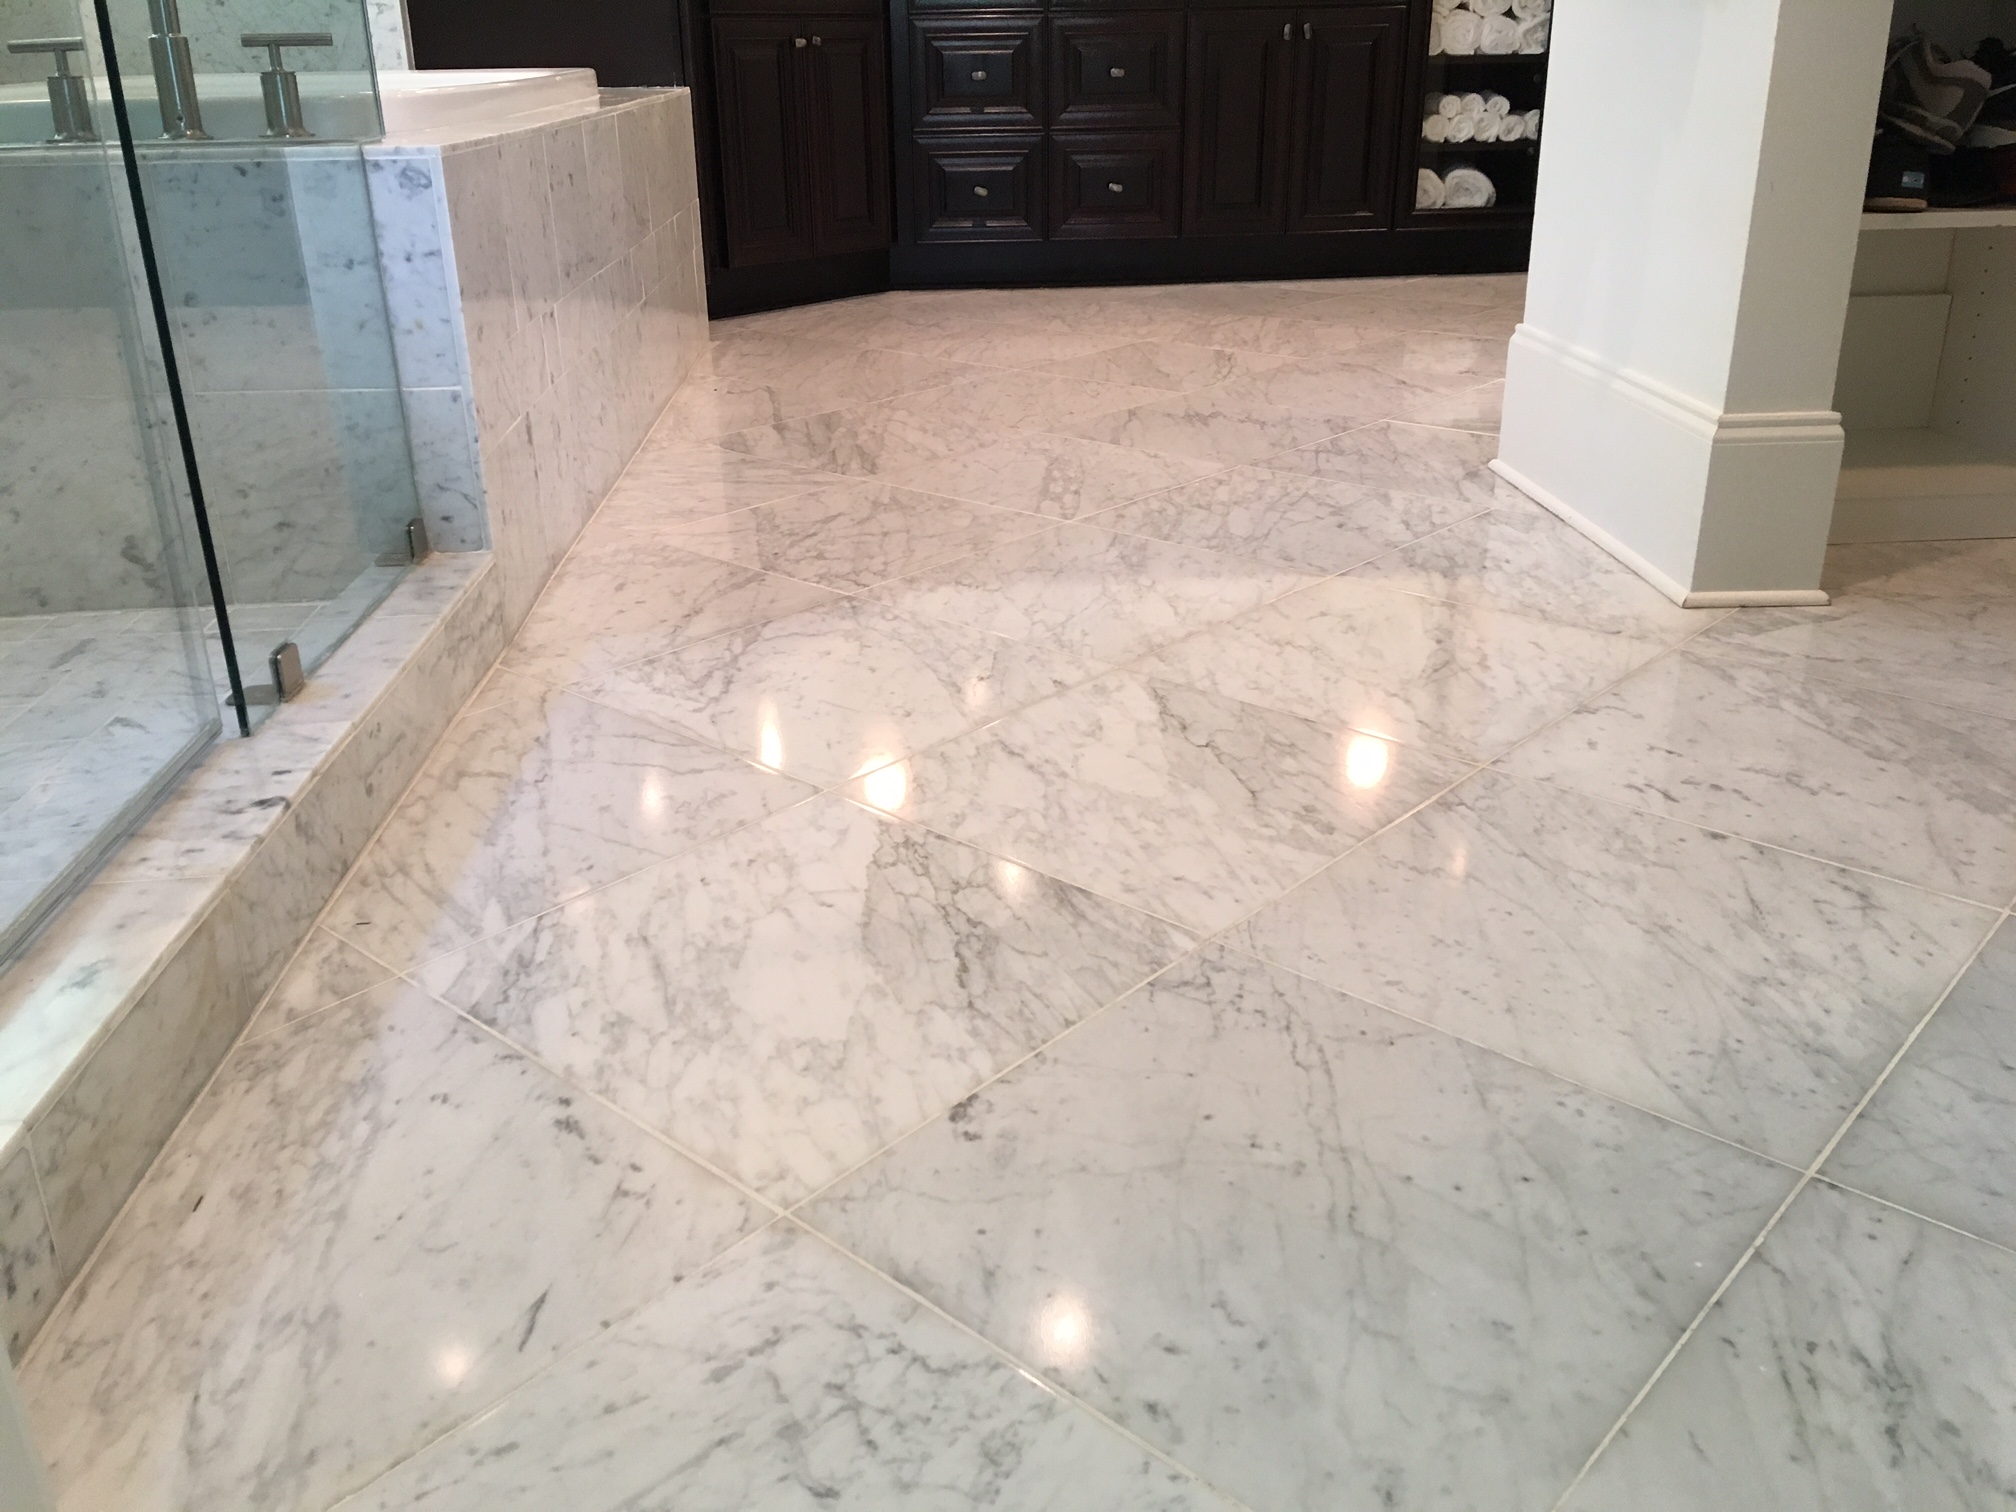 Concrete Floor Finishing Option with Natural Diamond Polish